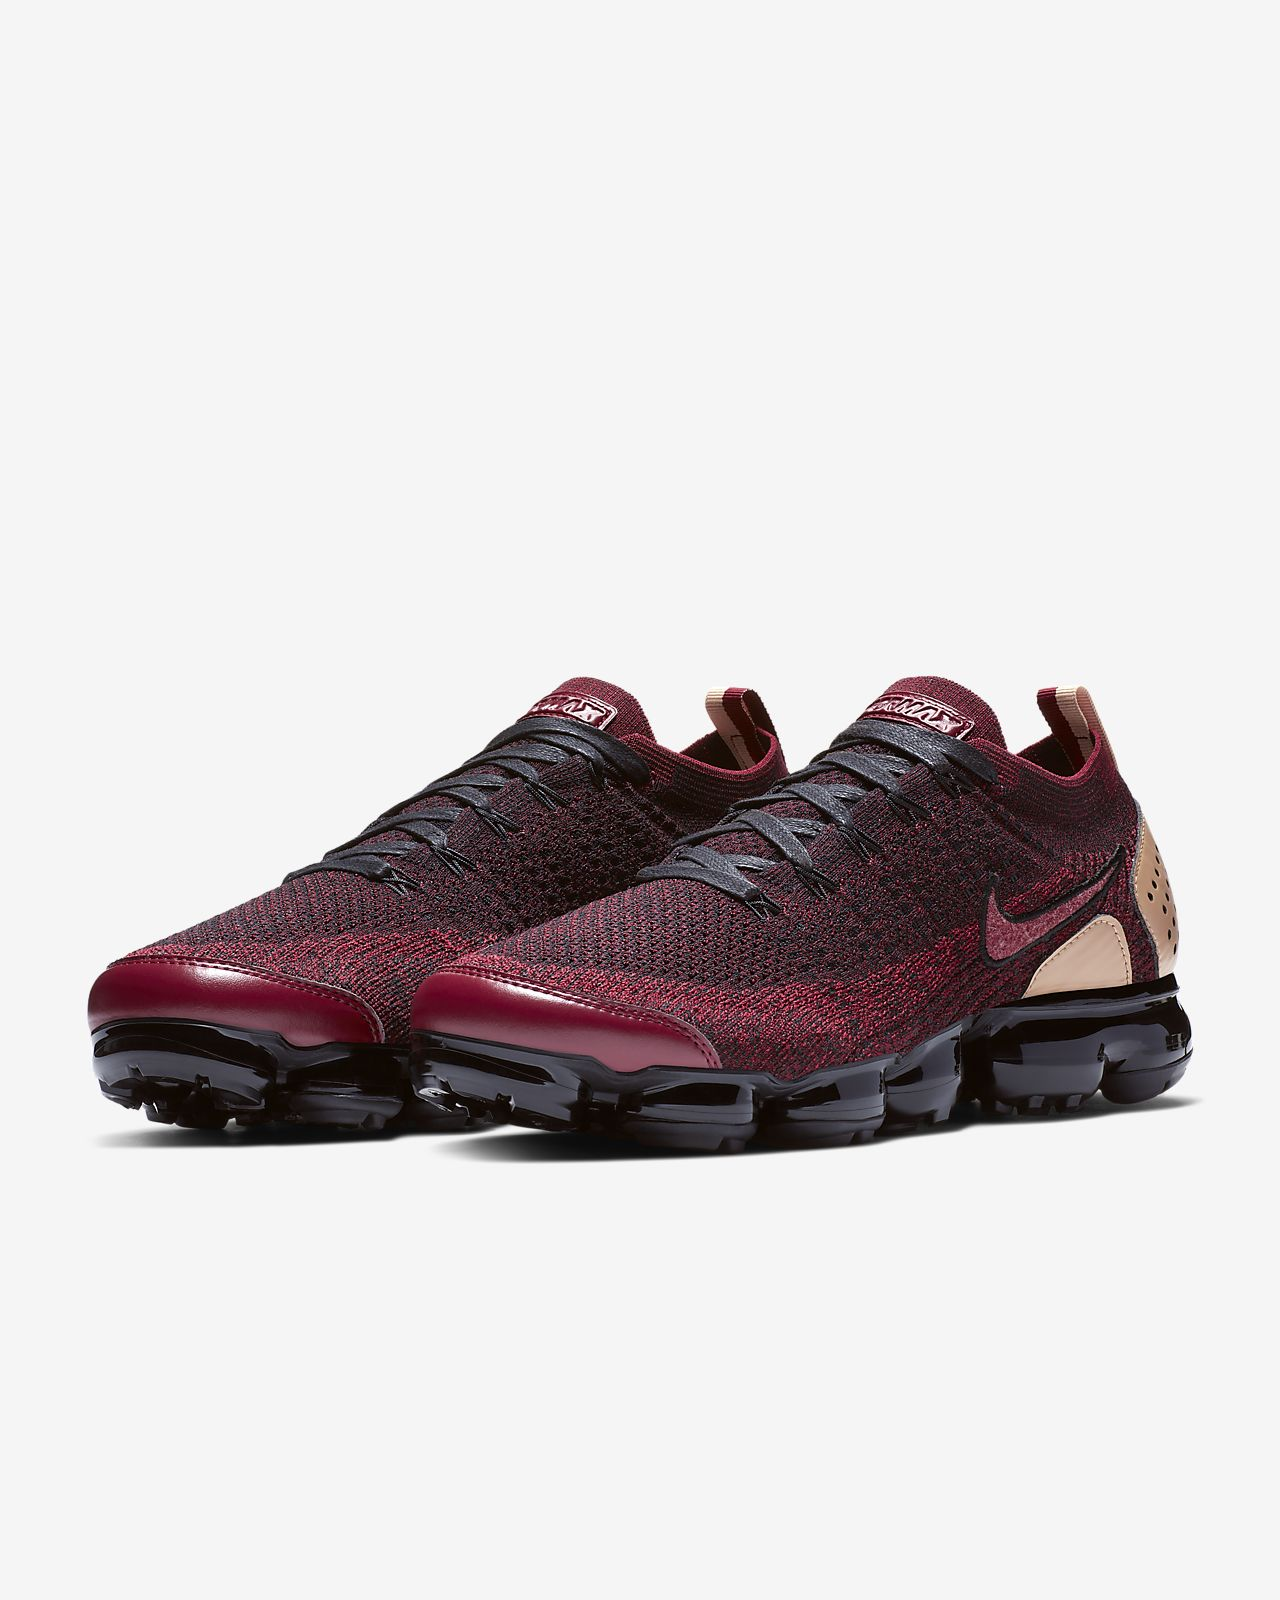 ace23633d8 Nike Air VaporMax Flyknit 2 NRG Men's Shoe. Nike.com MY